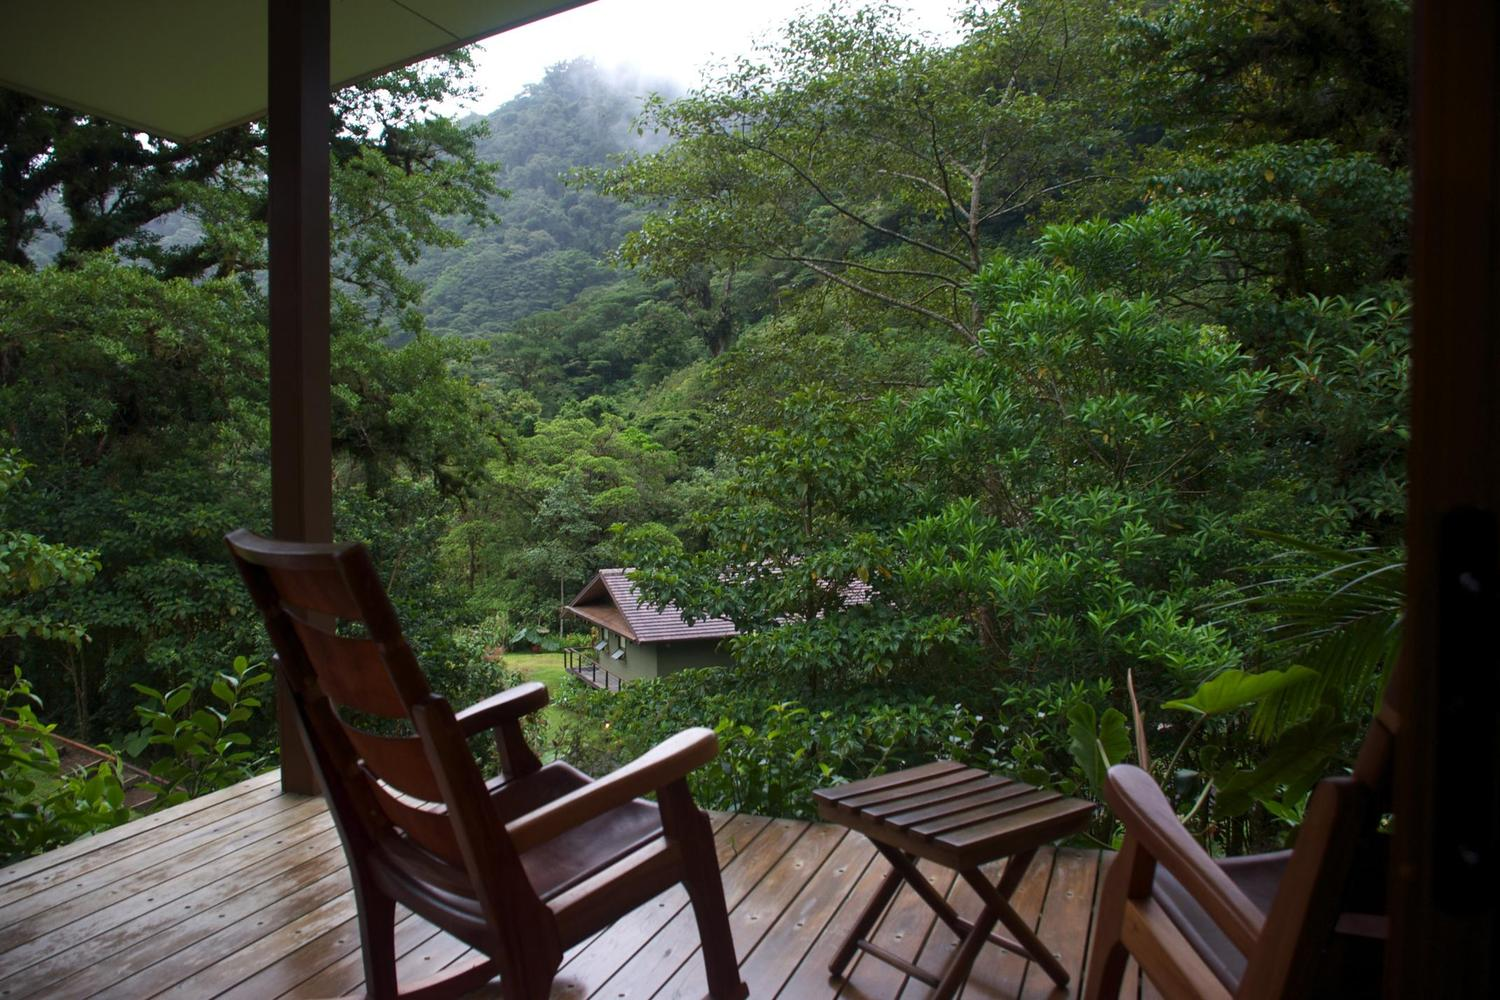 Looking out from the Trogon Lodge in the San Gerardo cloud forest area